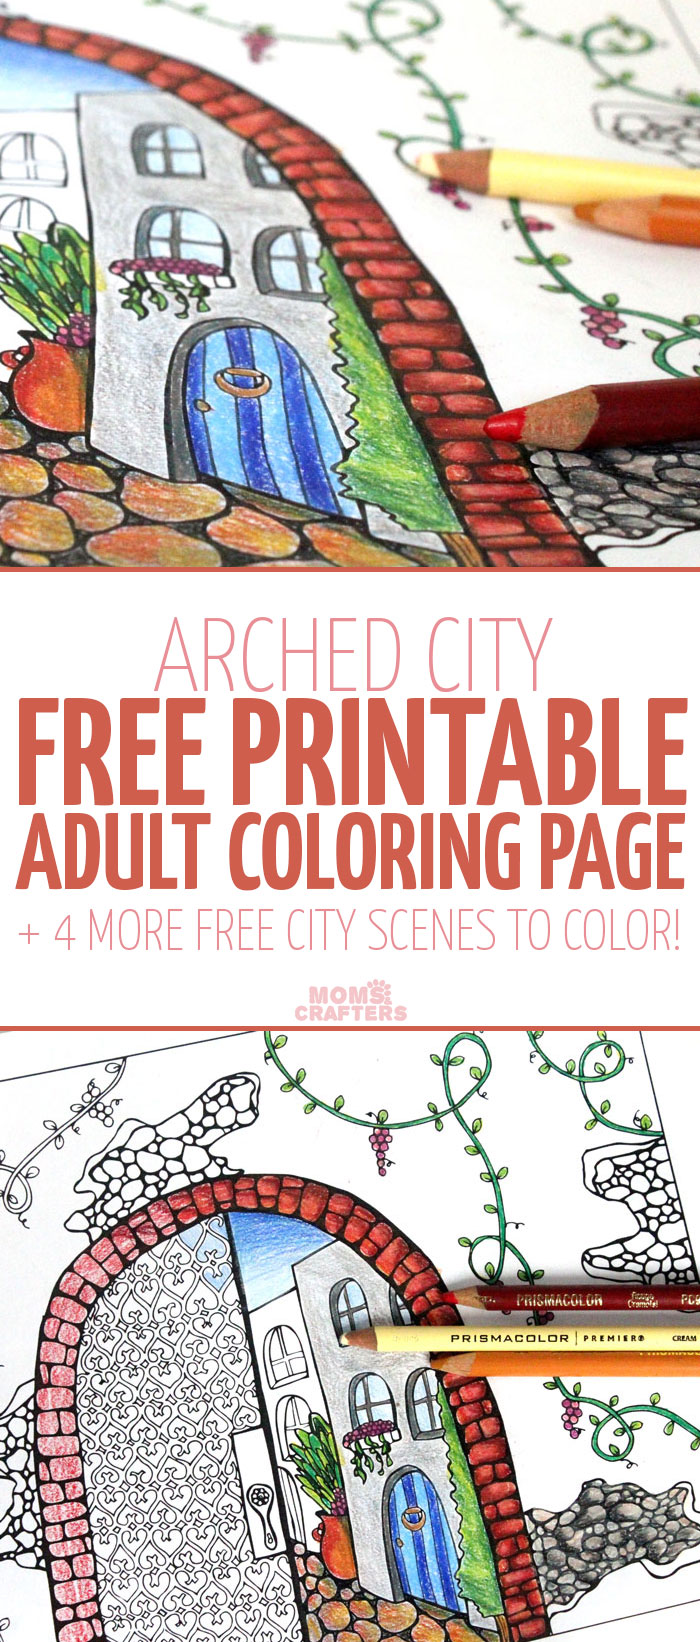 Grab this pretty amazing free printable coloring page for adults! This arched city has tons of fun detail to color, and it includes 4 more city themed colouring pages for adults for you to download for free.